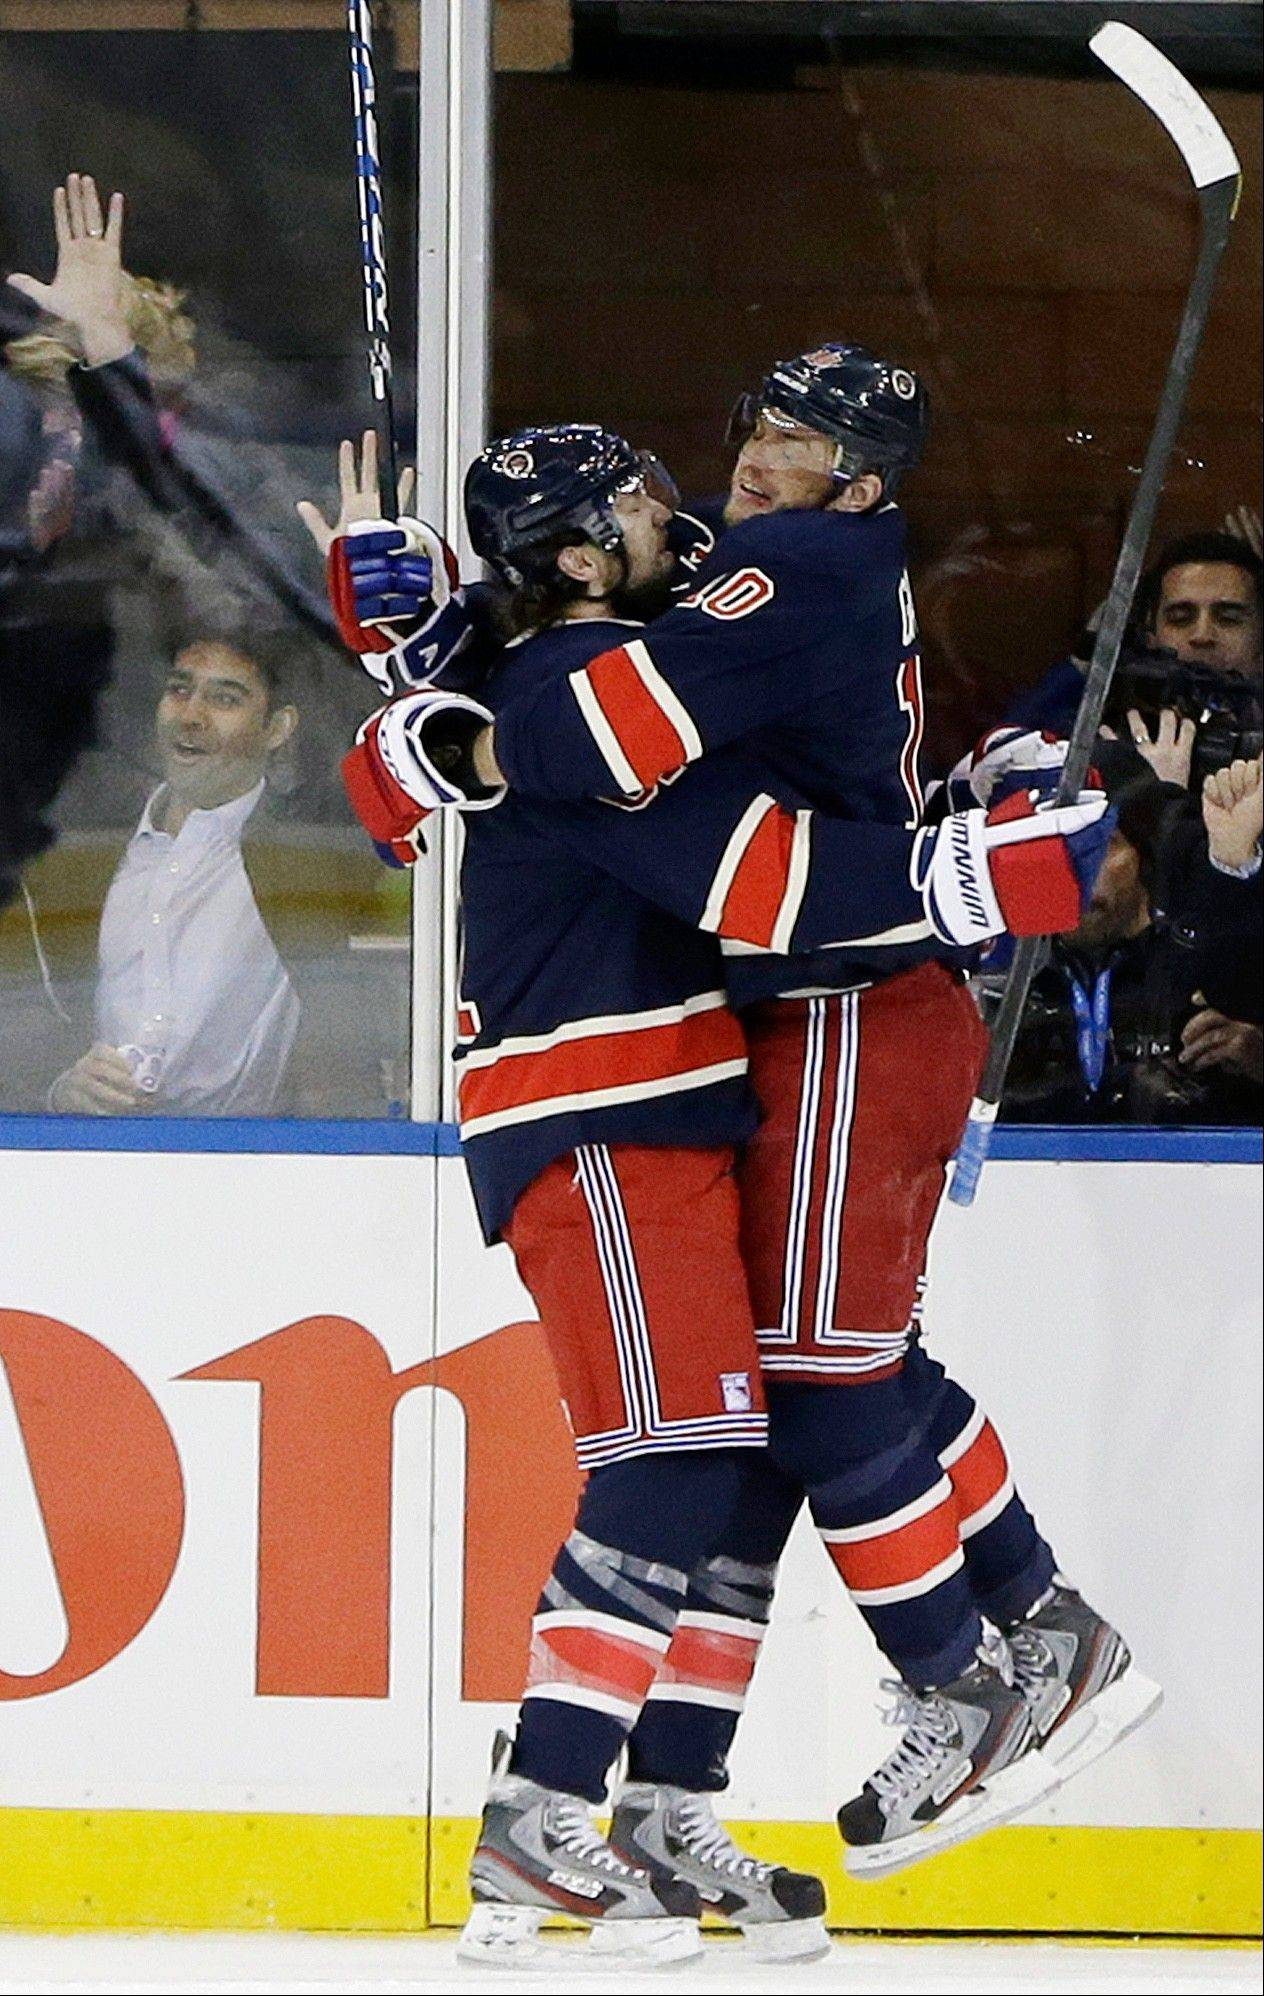 New York Rangers left wing Rick Nash (61) celebrates with New York Rangers right wing Marian Gaborik (10) after Gaborik scored a goal in the first period of their NHL hockey game at Madison Square Garden in New York, Wednesday, Jan. 23, 2013. Gaborik scored two goals in the period.